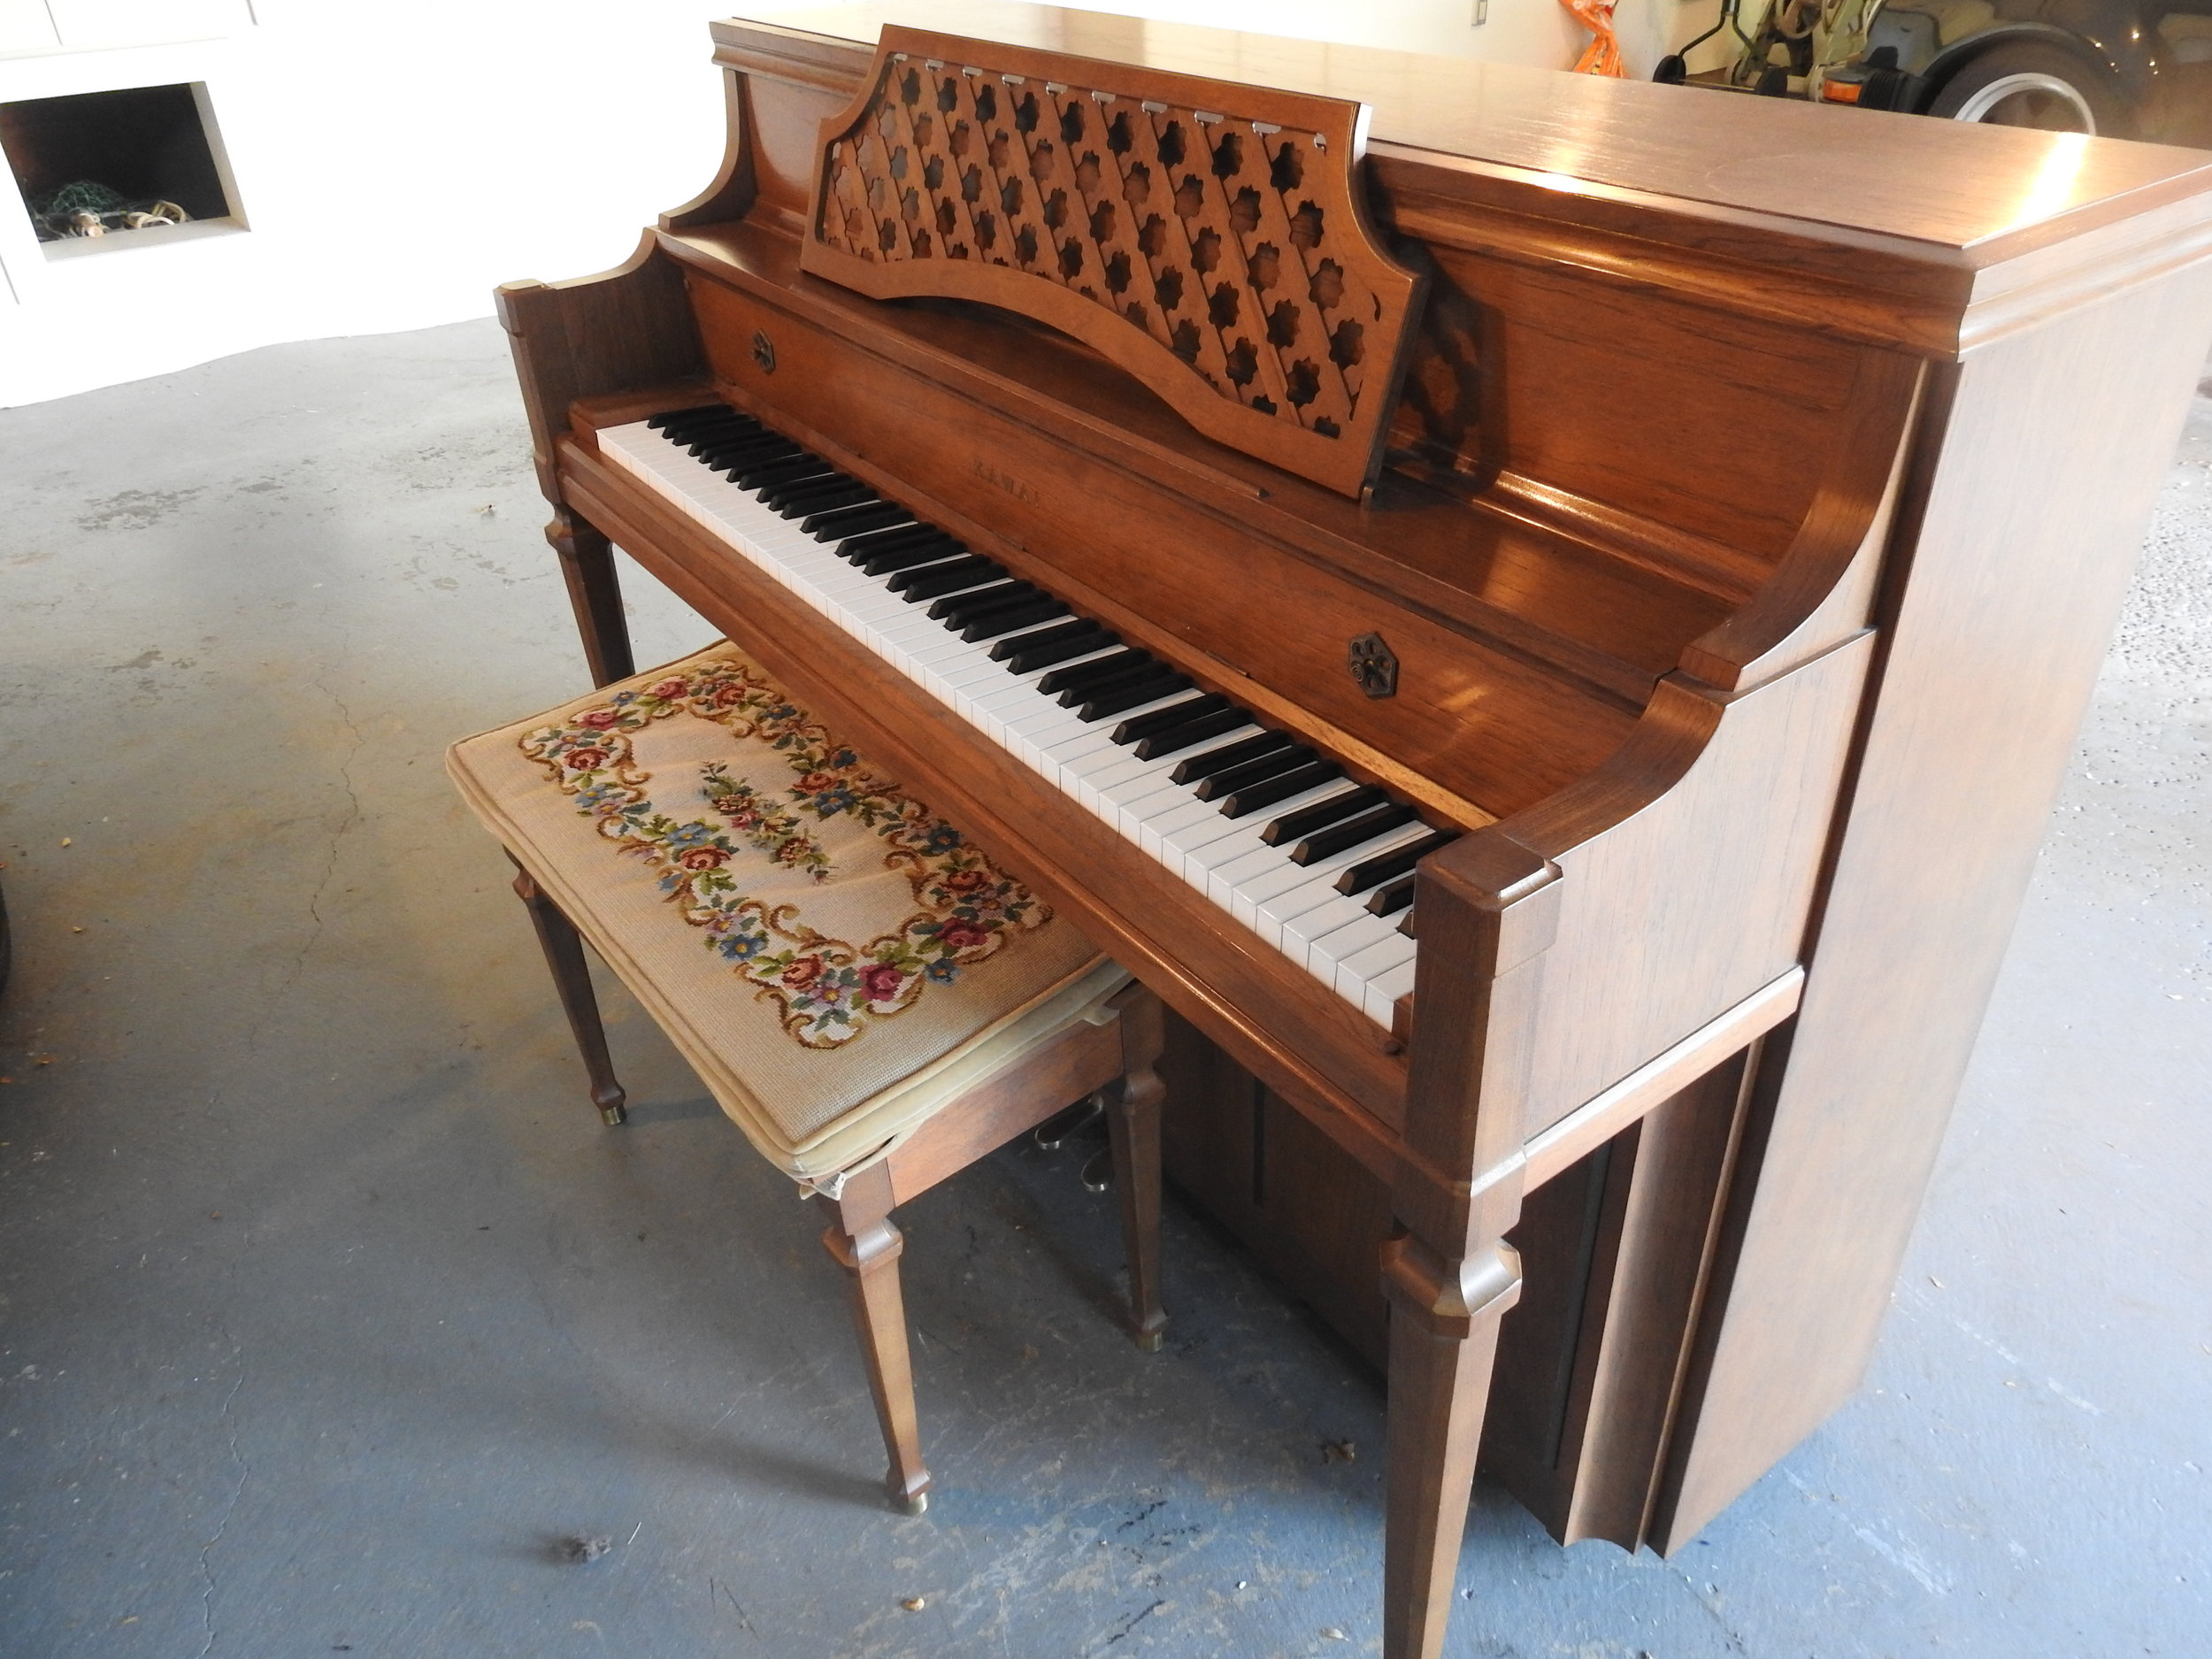 Do you have a piano that needs a home? - Moving? Downsizing? Fill out our donation form and we'll work on finding a new home for your instrument.